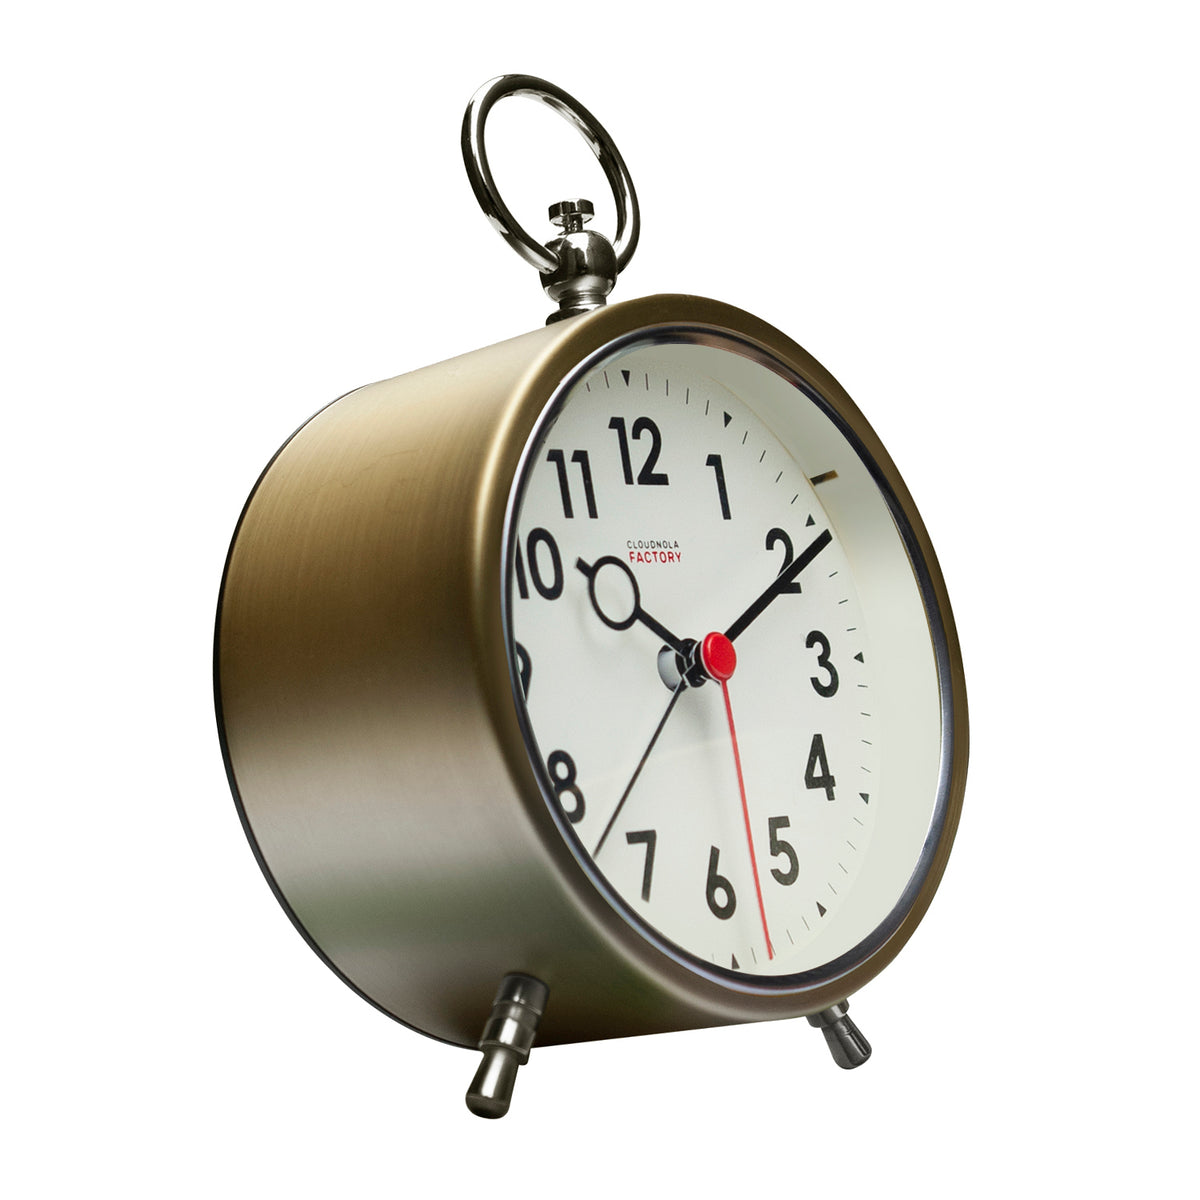 Factory Alarm Clock - Brushed Gold